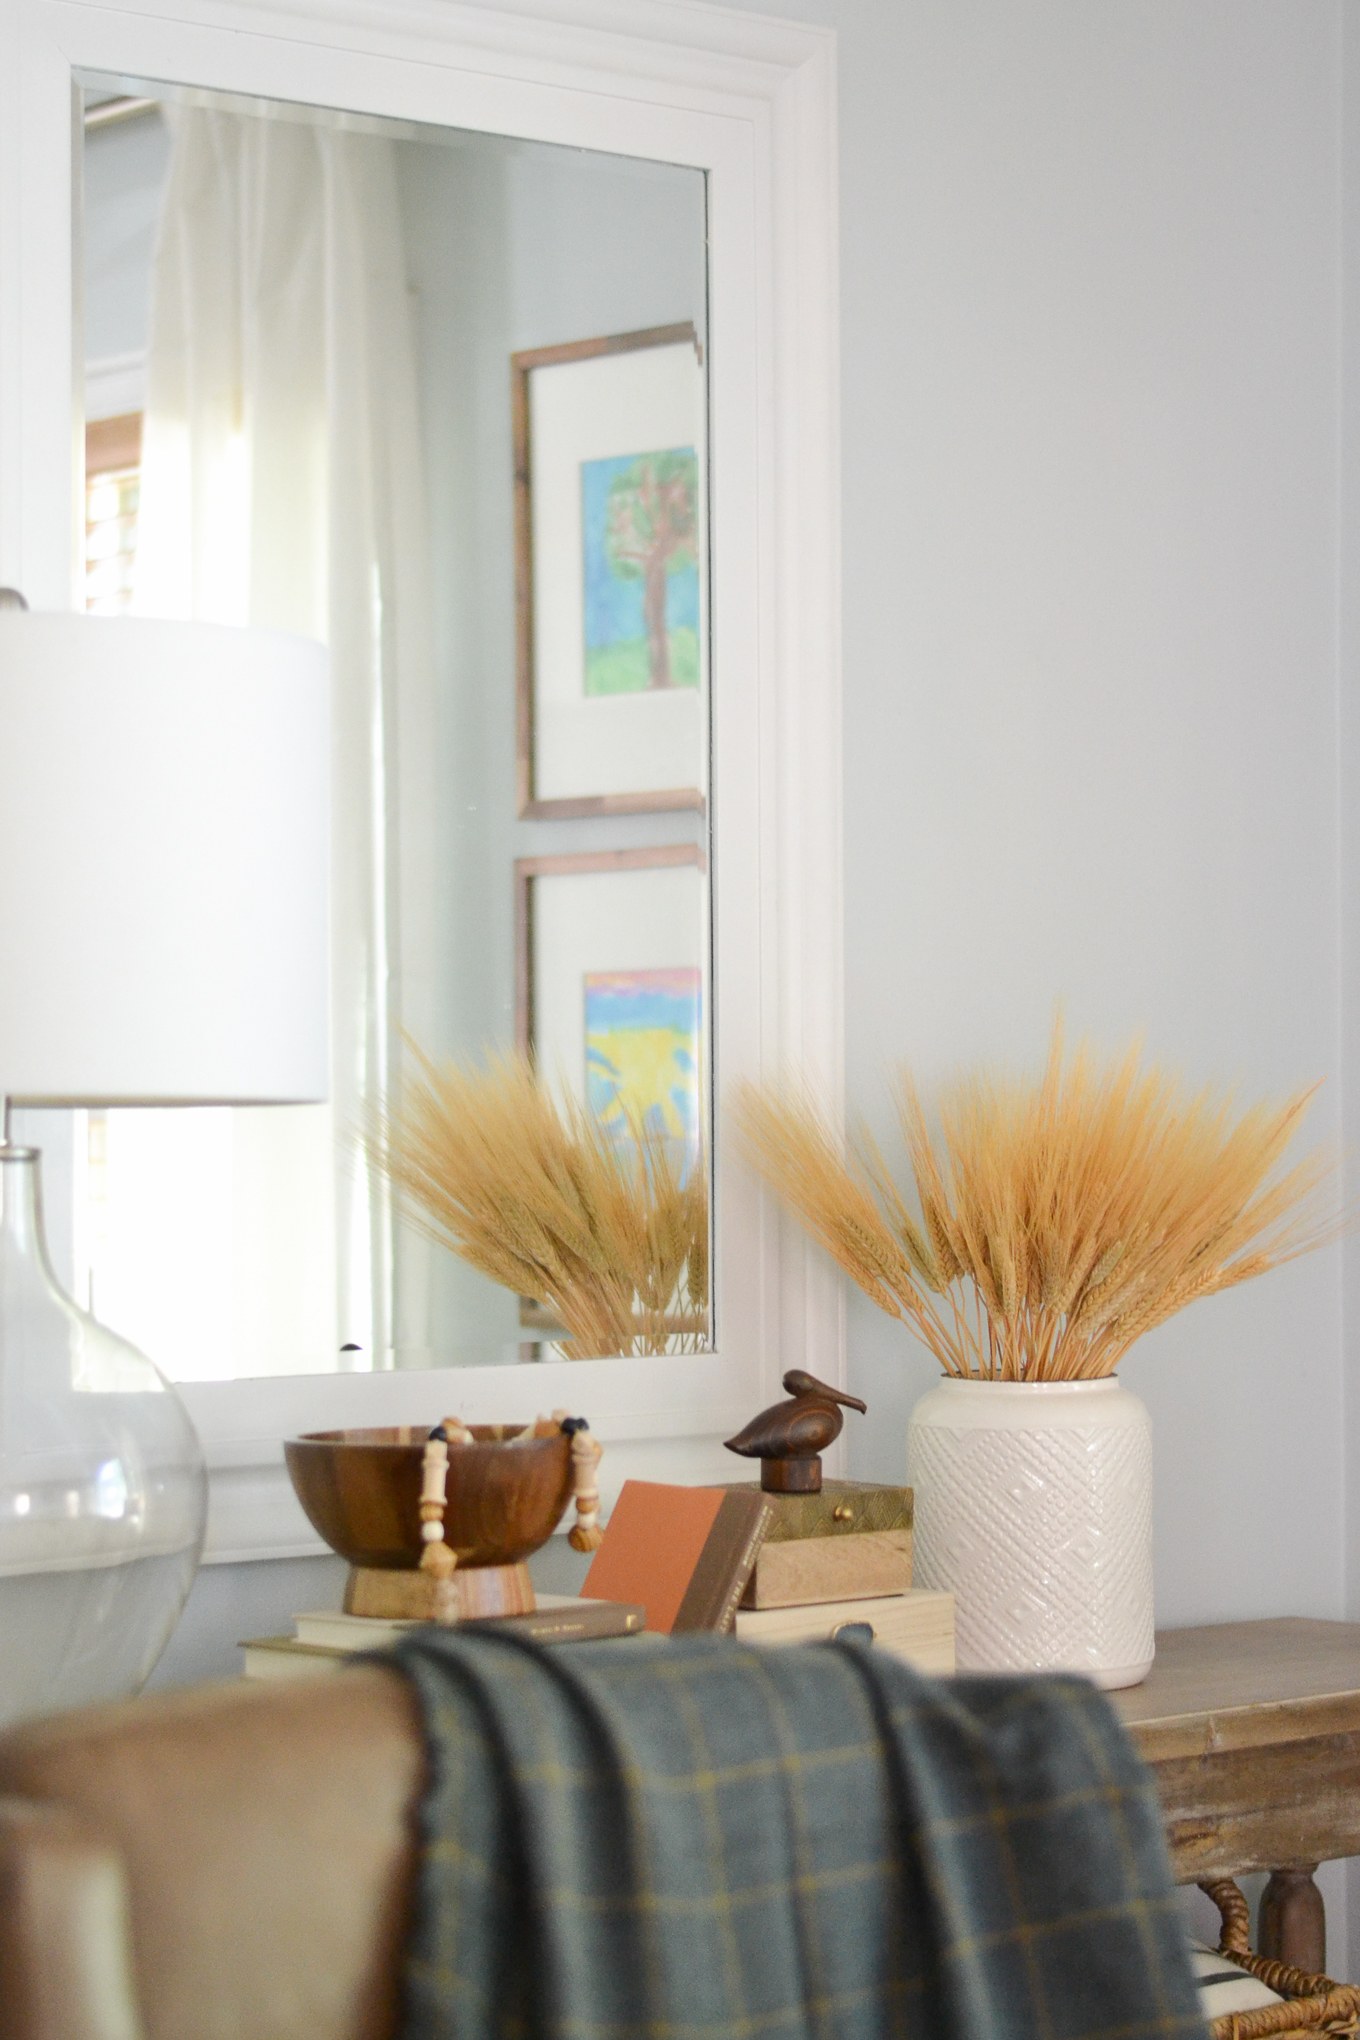 living room wooden ideas modern decor 2017 decorating for fall balancing home my additions included a bowl and figurine the wood was clearance find at target man do i love me aisle end cap